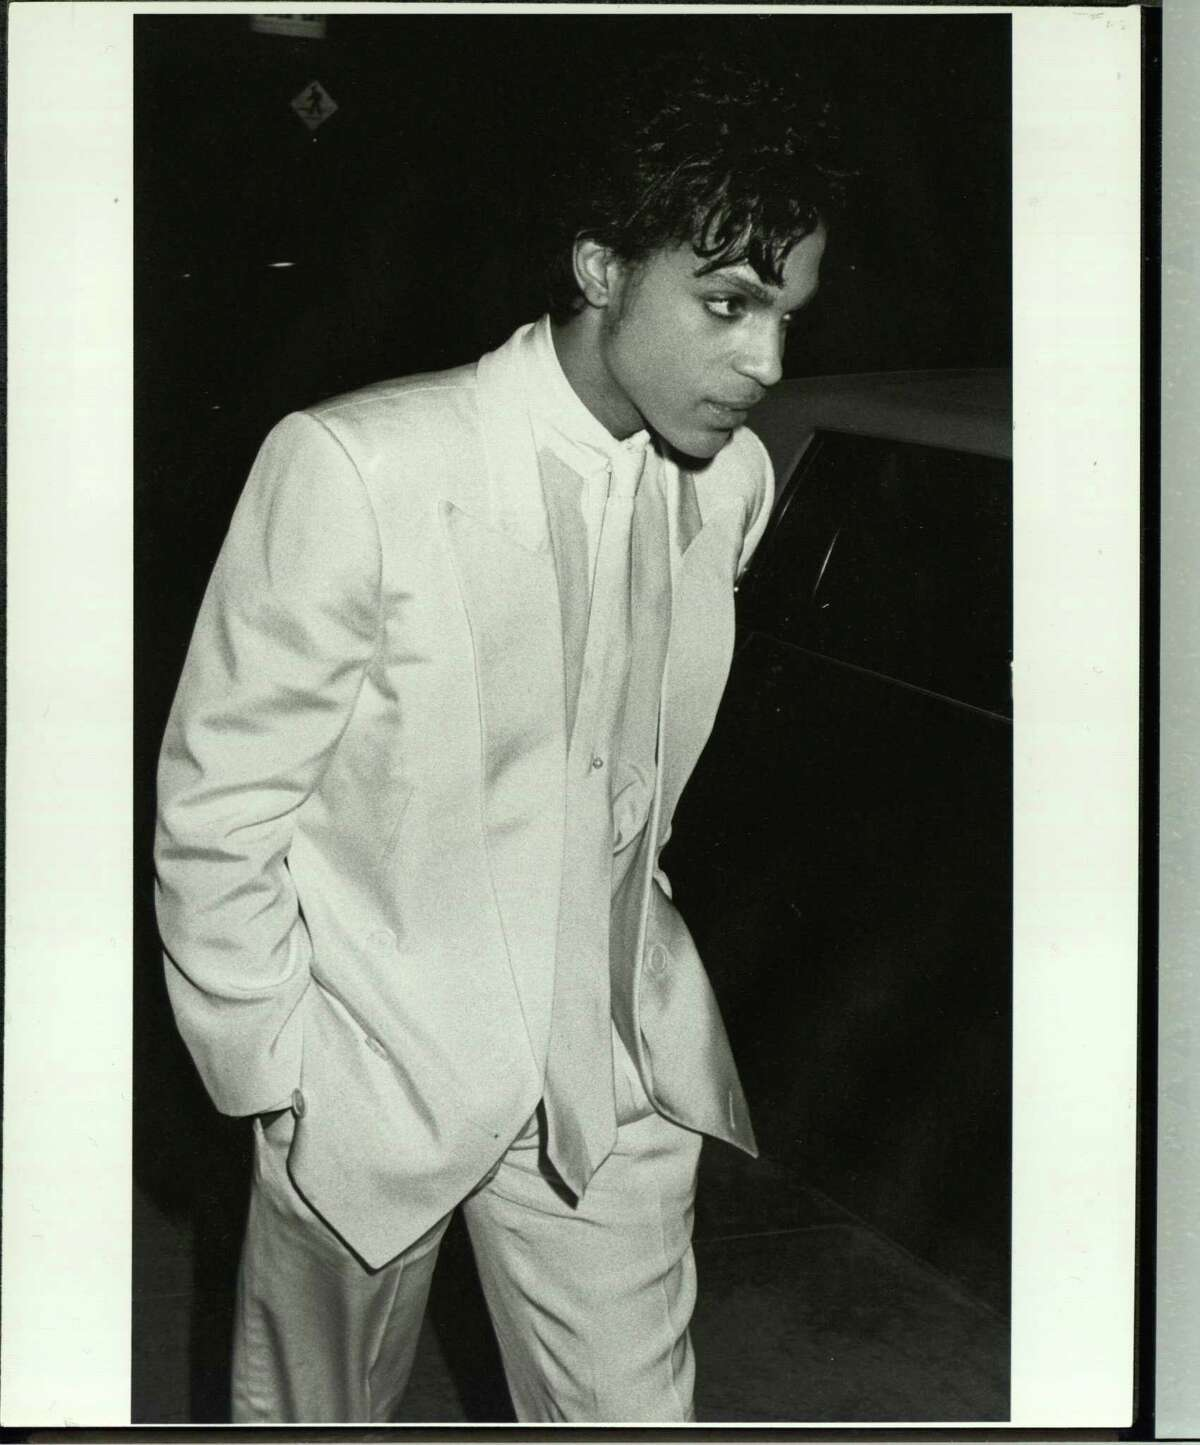 American singer, songwriter and musician Prince, circa 1985. (Photo by The LIFE Picture Collection/Getty Images)